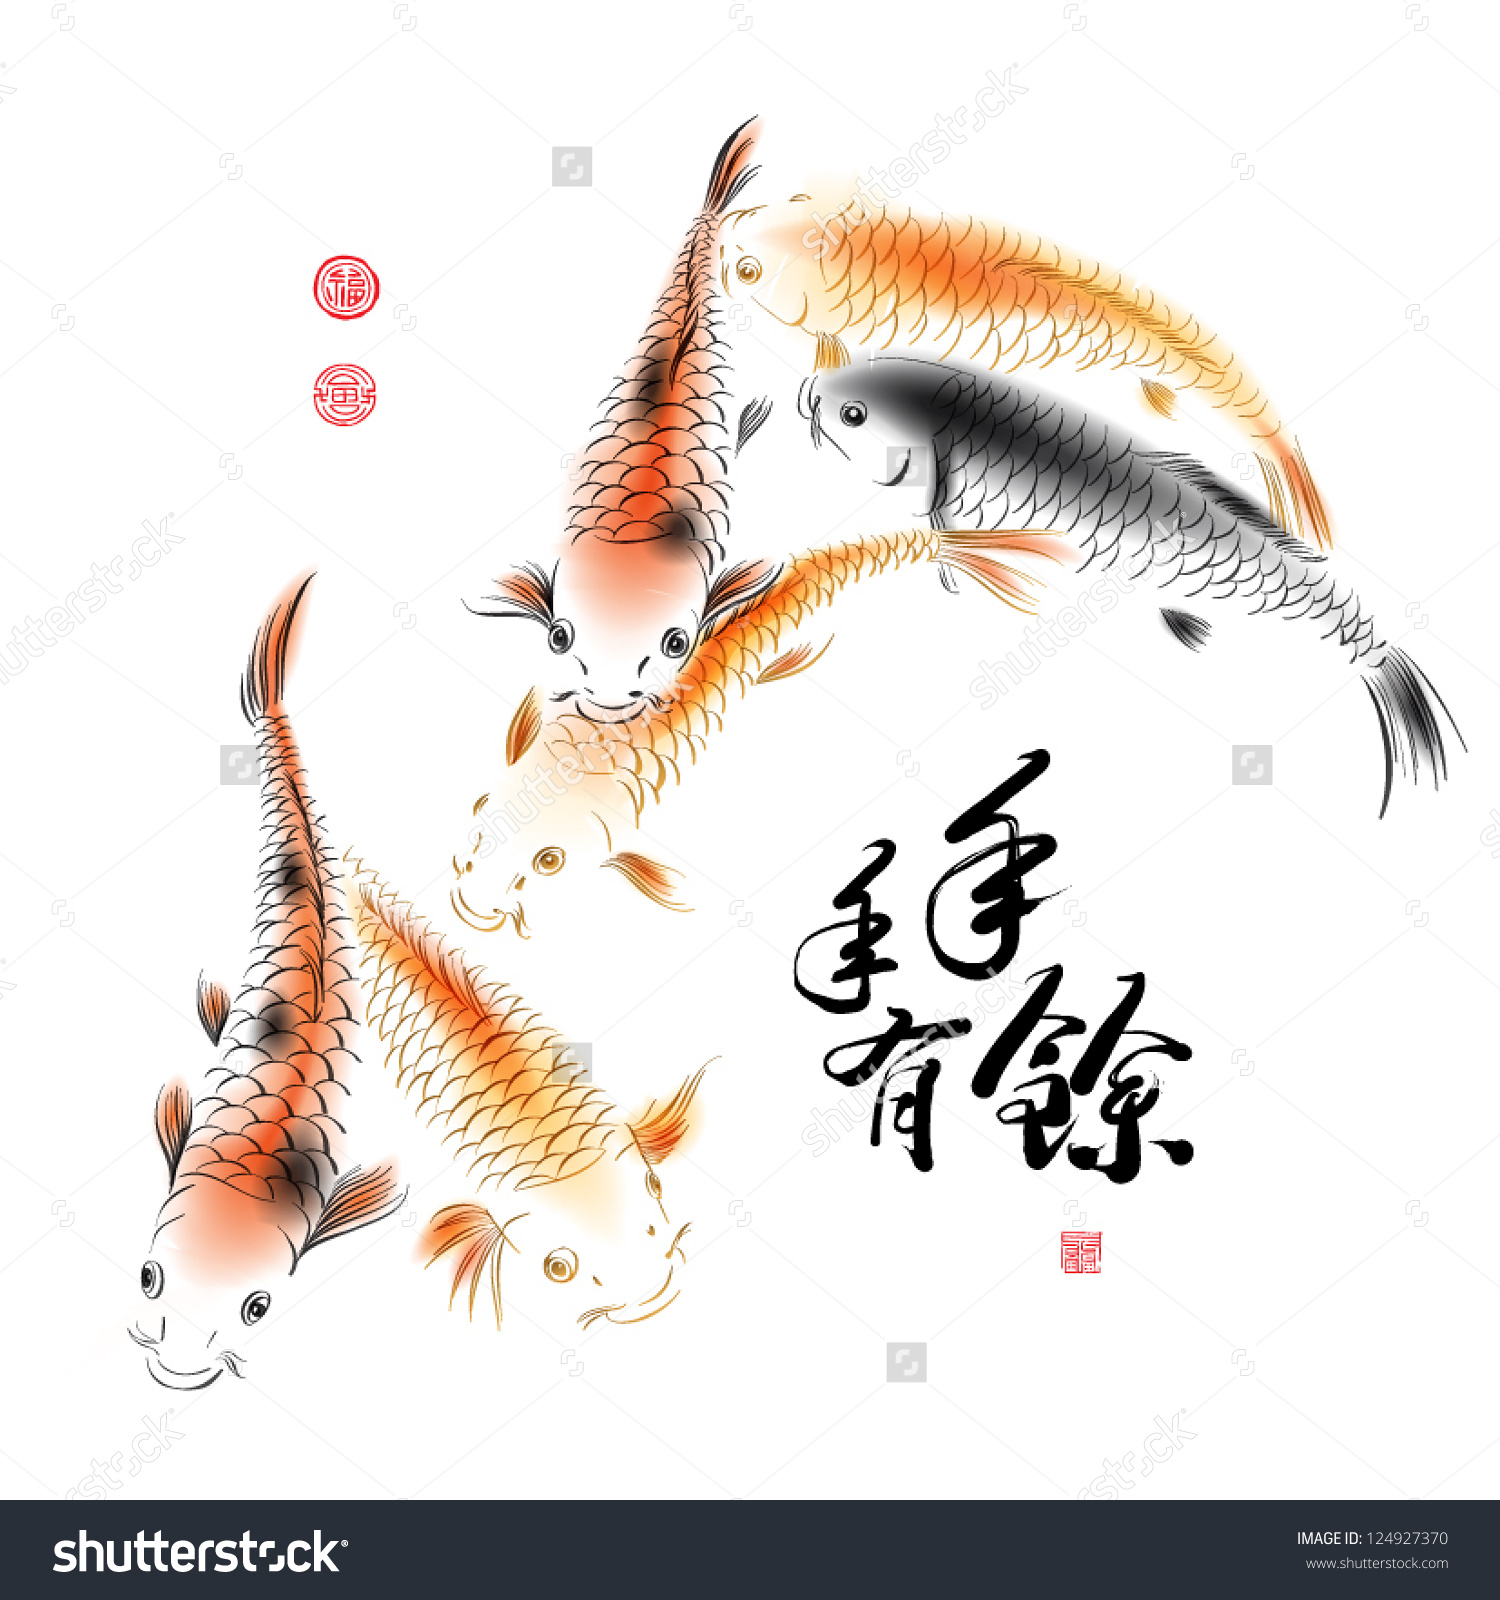 Chinese painting clipart.